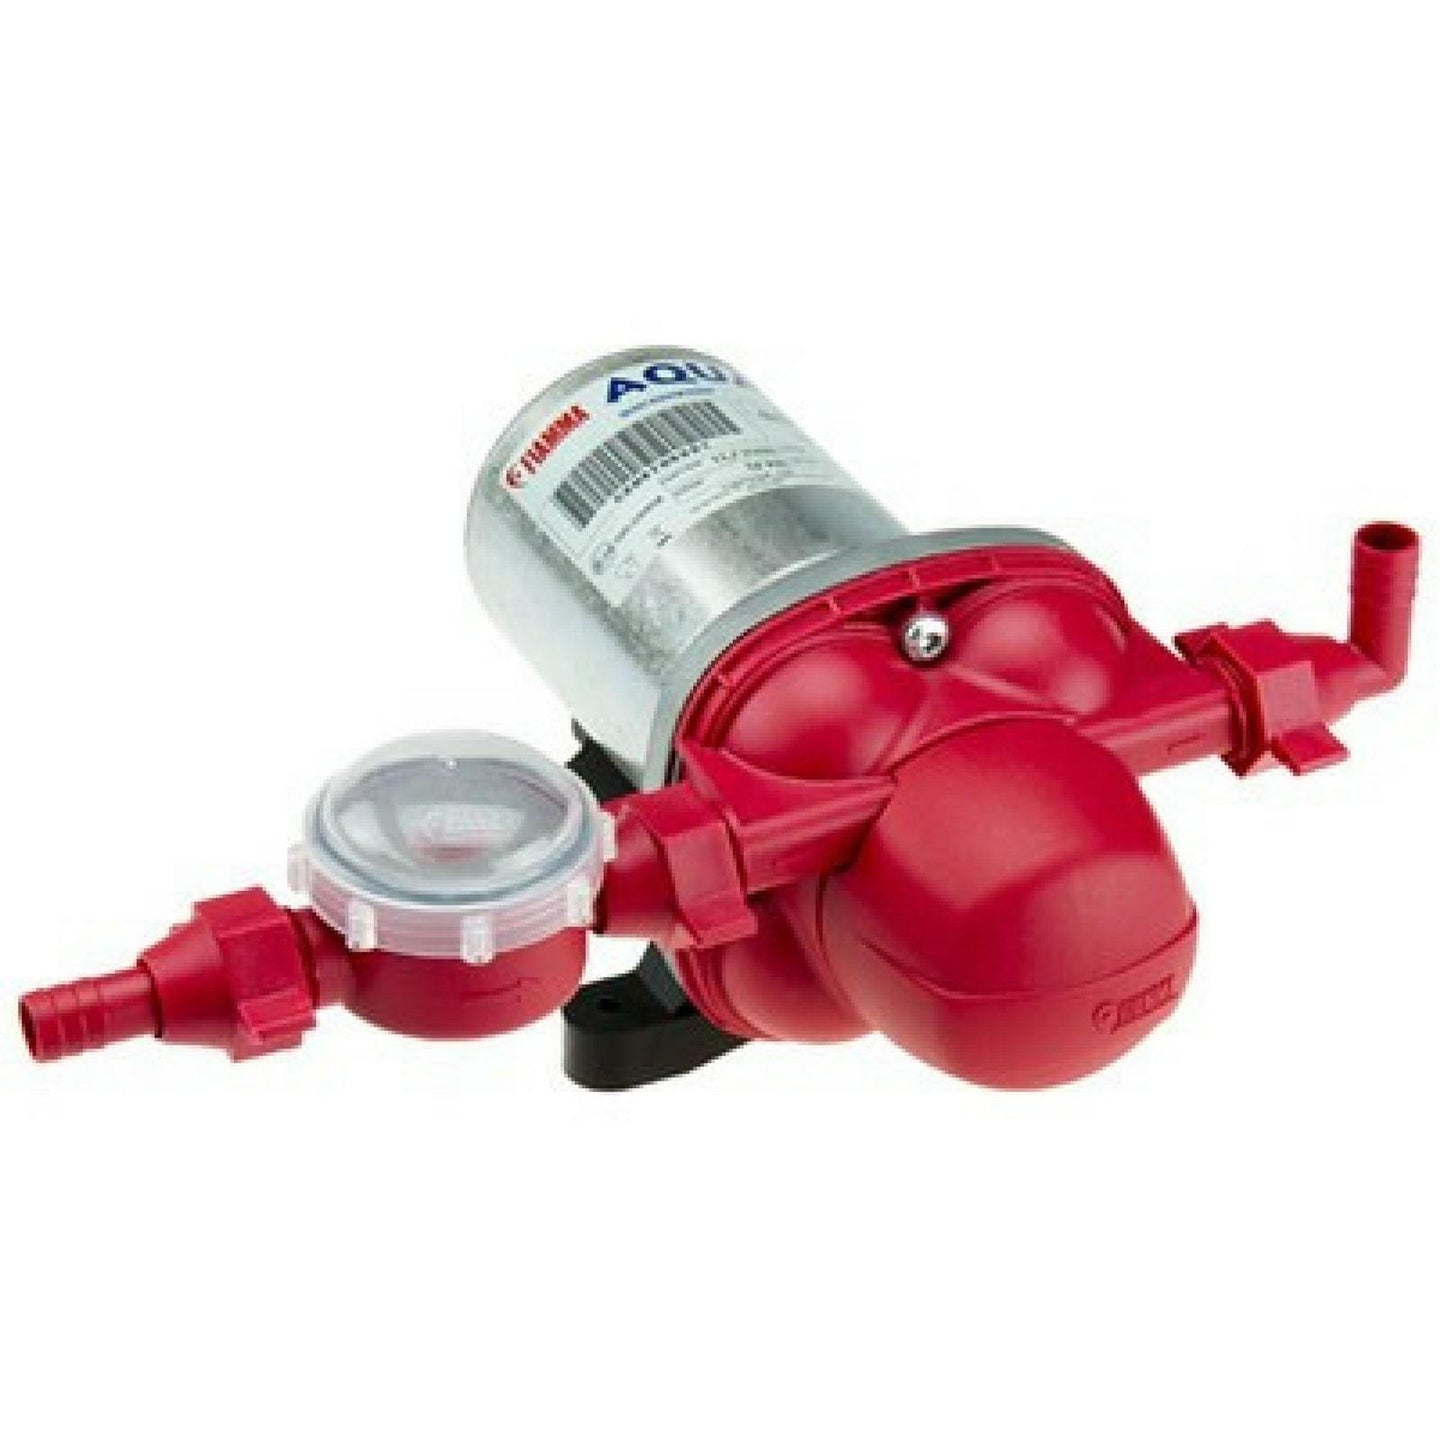 Fiamma Aqua F Water Pump made by Fiamma. A Add-ons sold by Quality Caravan Awnings